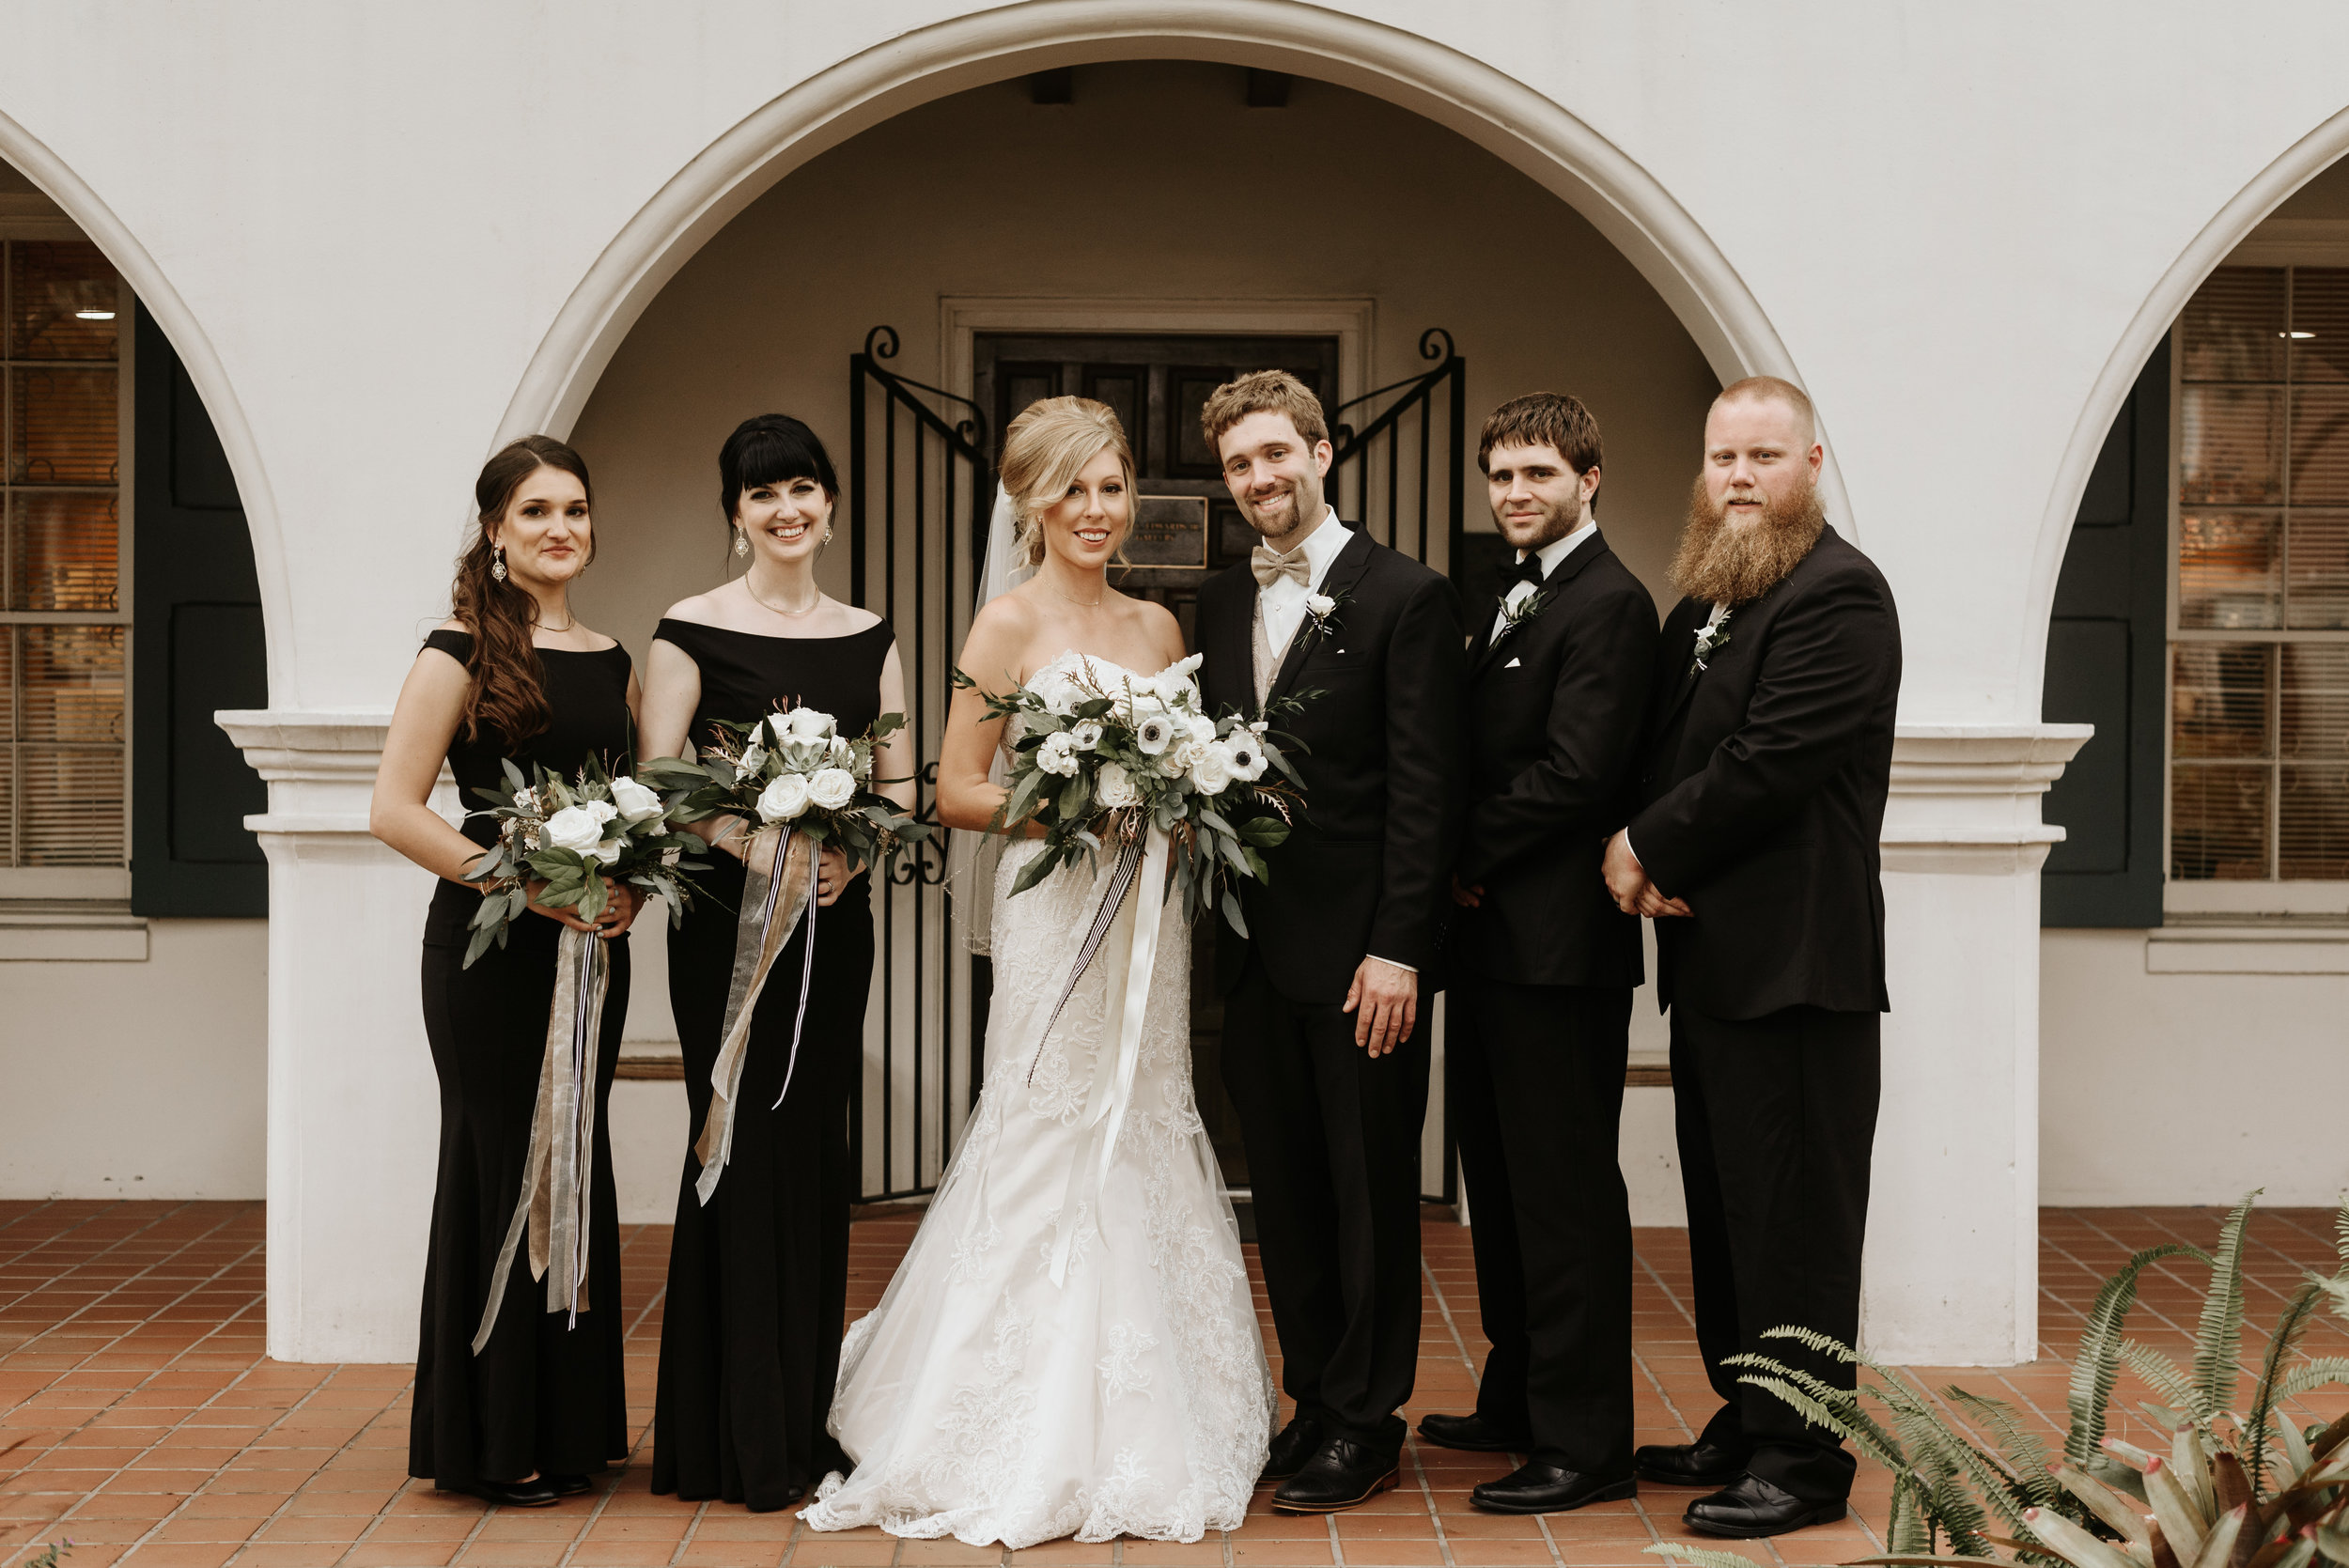 Mandy-Brad-Wedding-Previews-2538.jpg